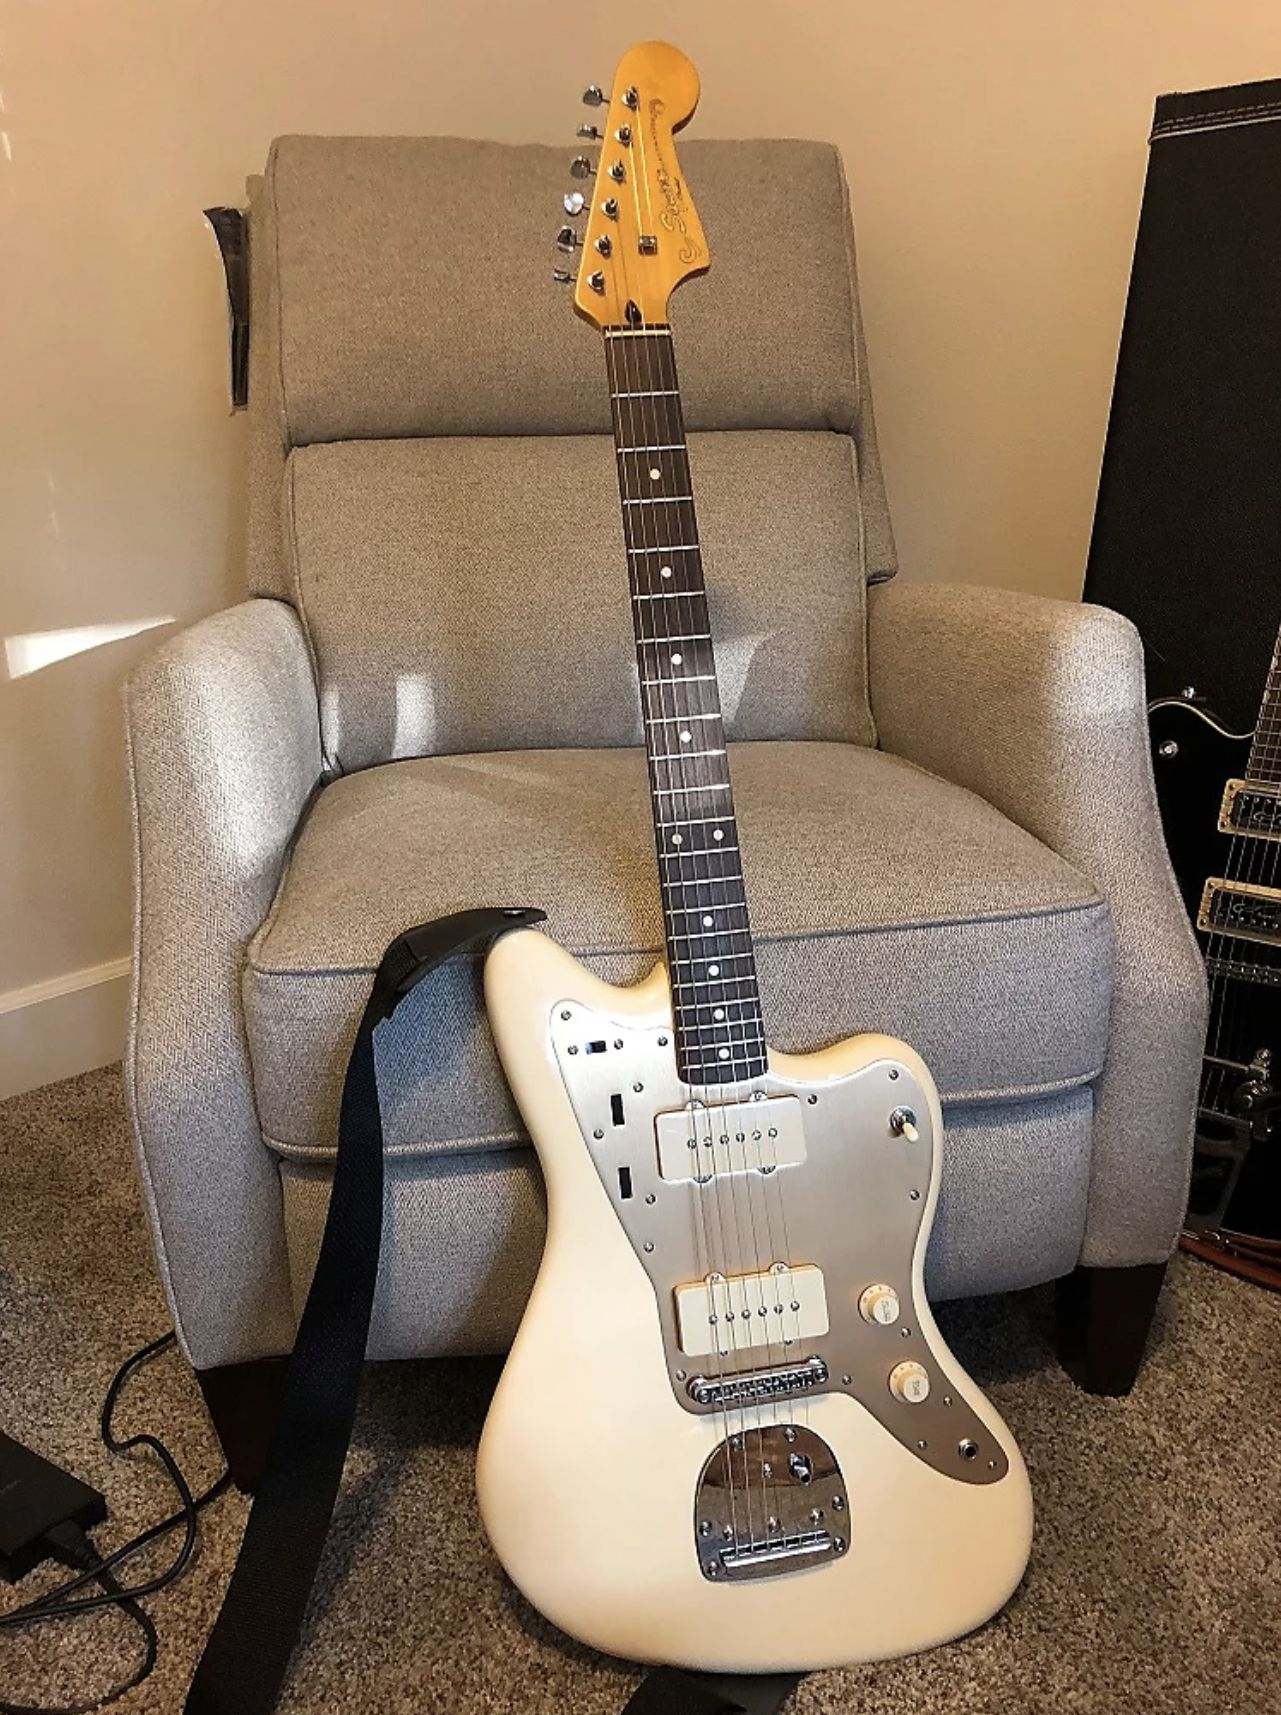 trusty j mascis jazzmaster but photographed in a different light so explore jazzmaster wiring jazzmaster build and more fender jaguar [ 1281 x 1715 Pixel ]